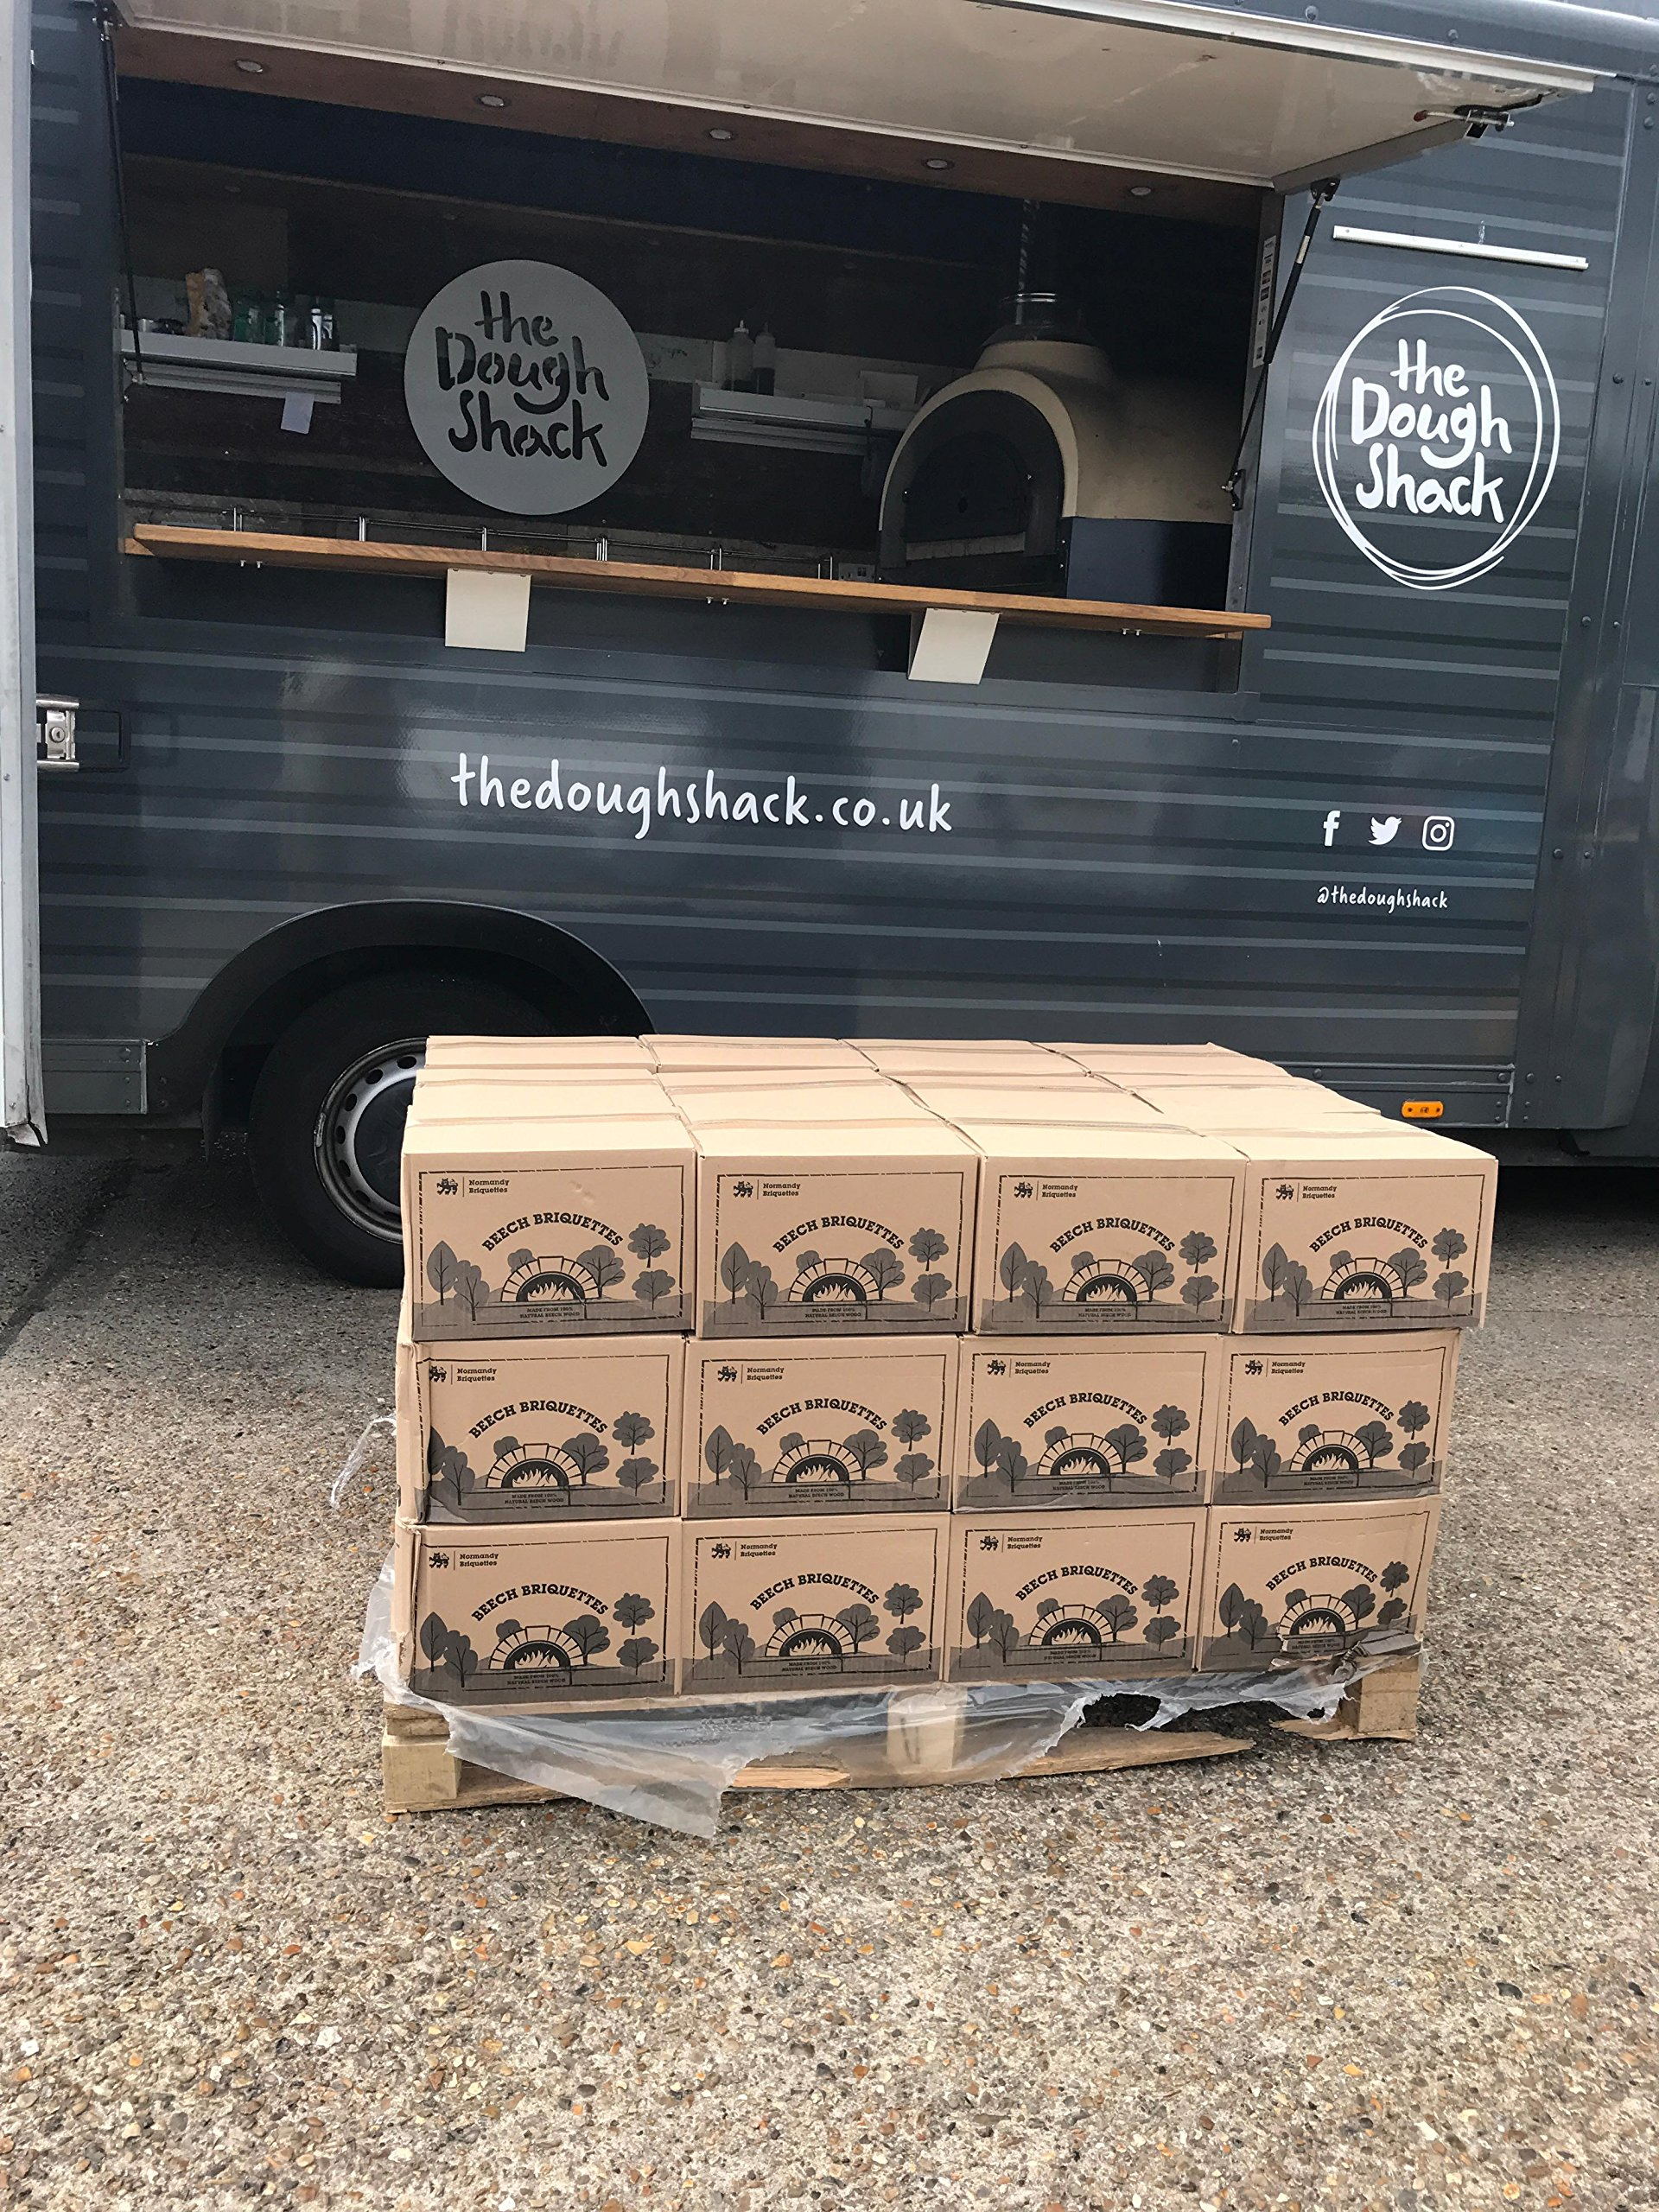 Normandy Beech Briquettes –12KG - Wood Burning Stove & Pizza Oven Firewood, Burns for up to 12 Hours - Very Hot & Long Burning Compressed Logs. 100% Natural Beech - Eco Friendly Fuel 6